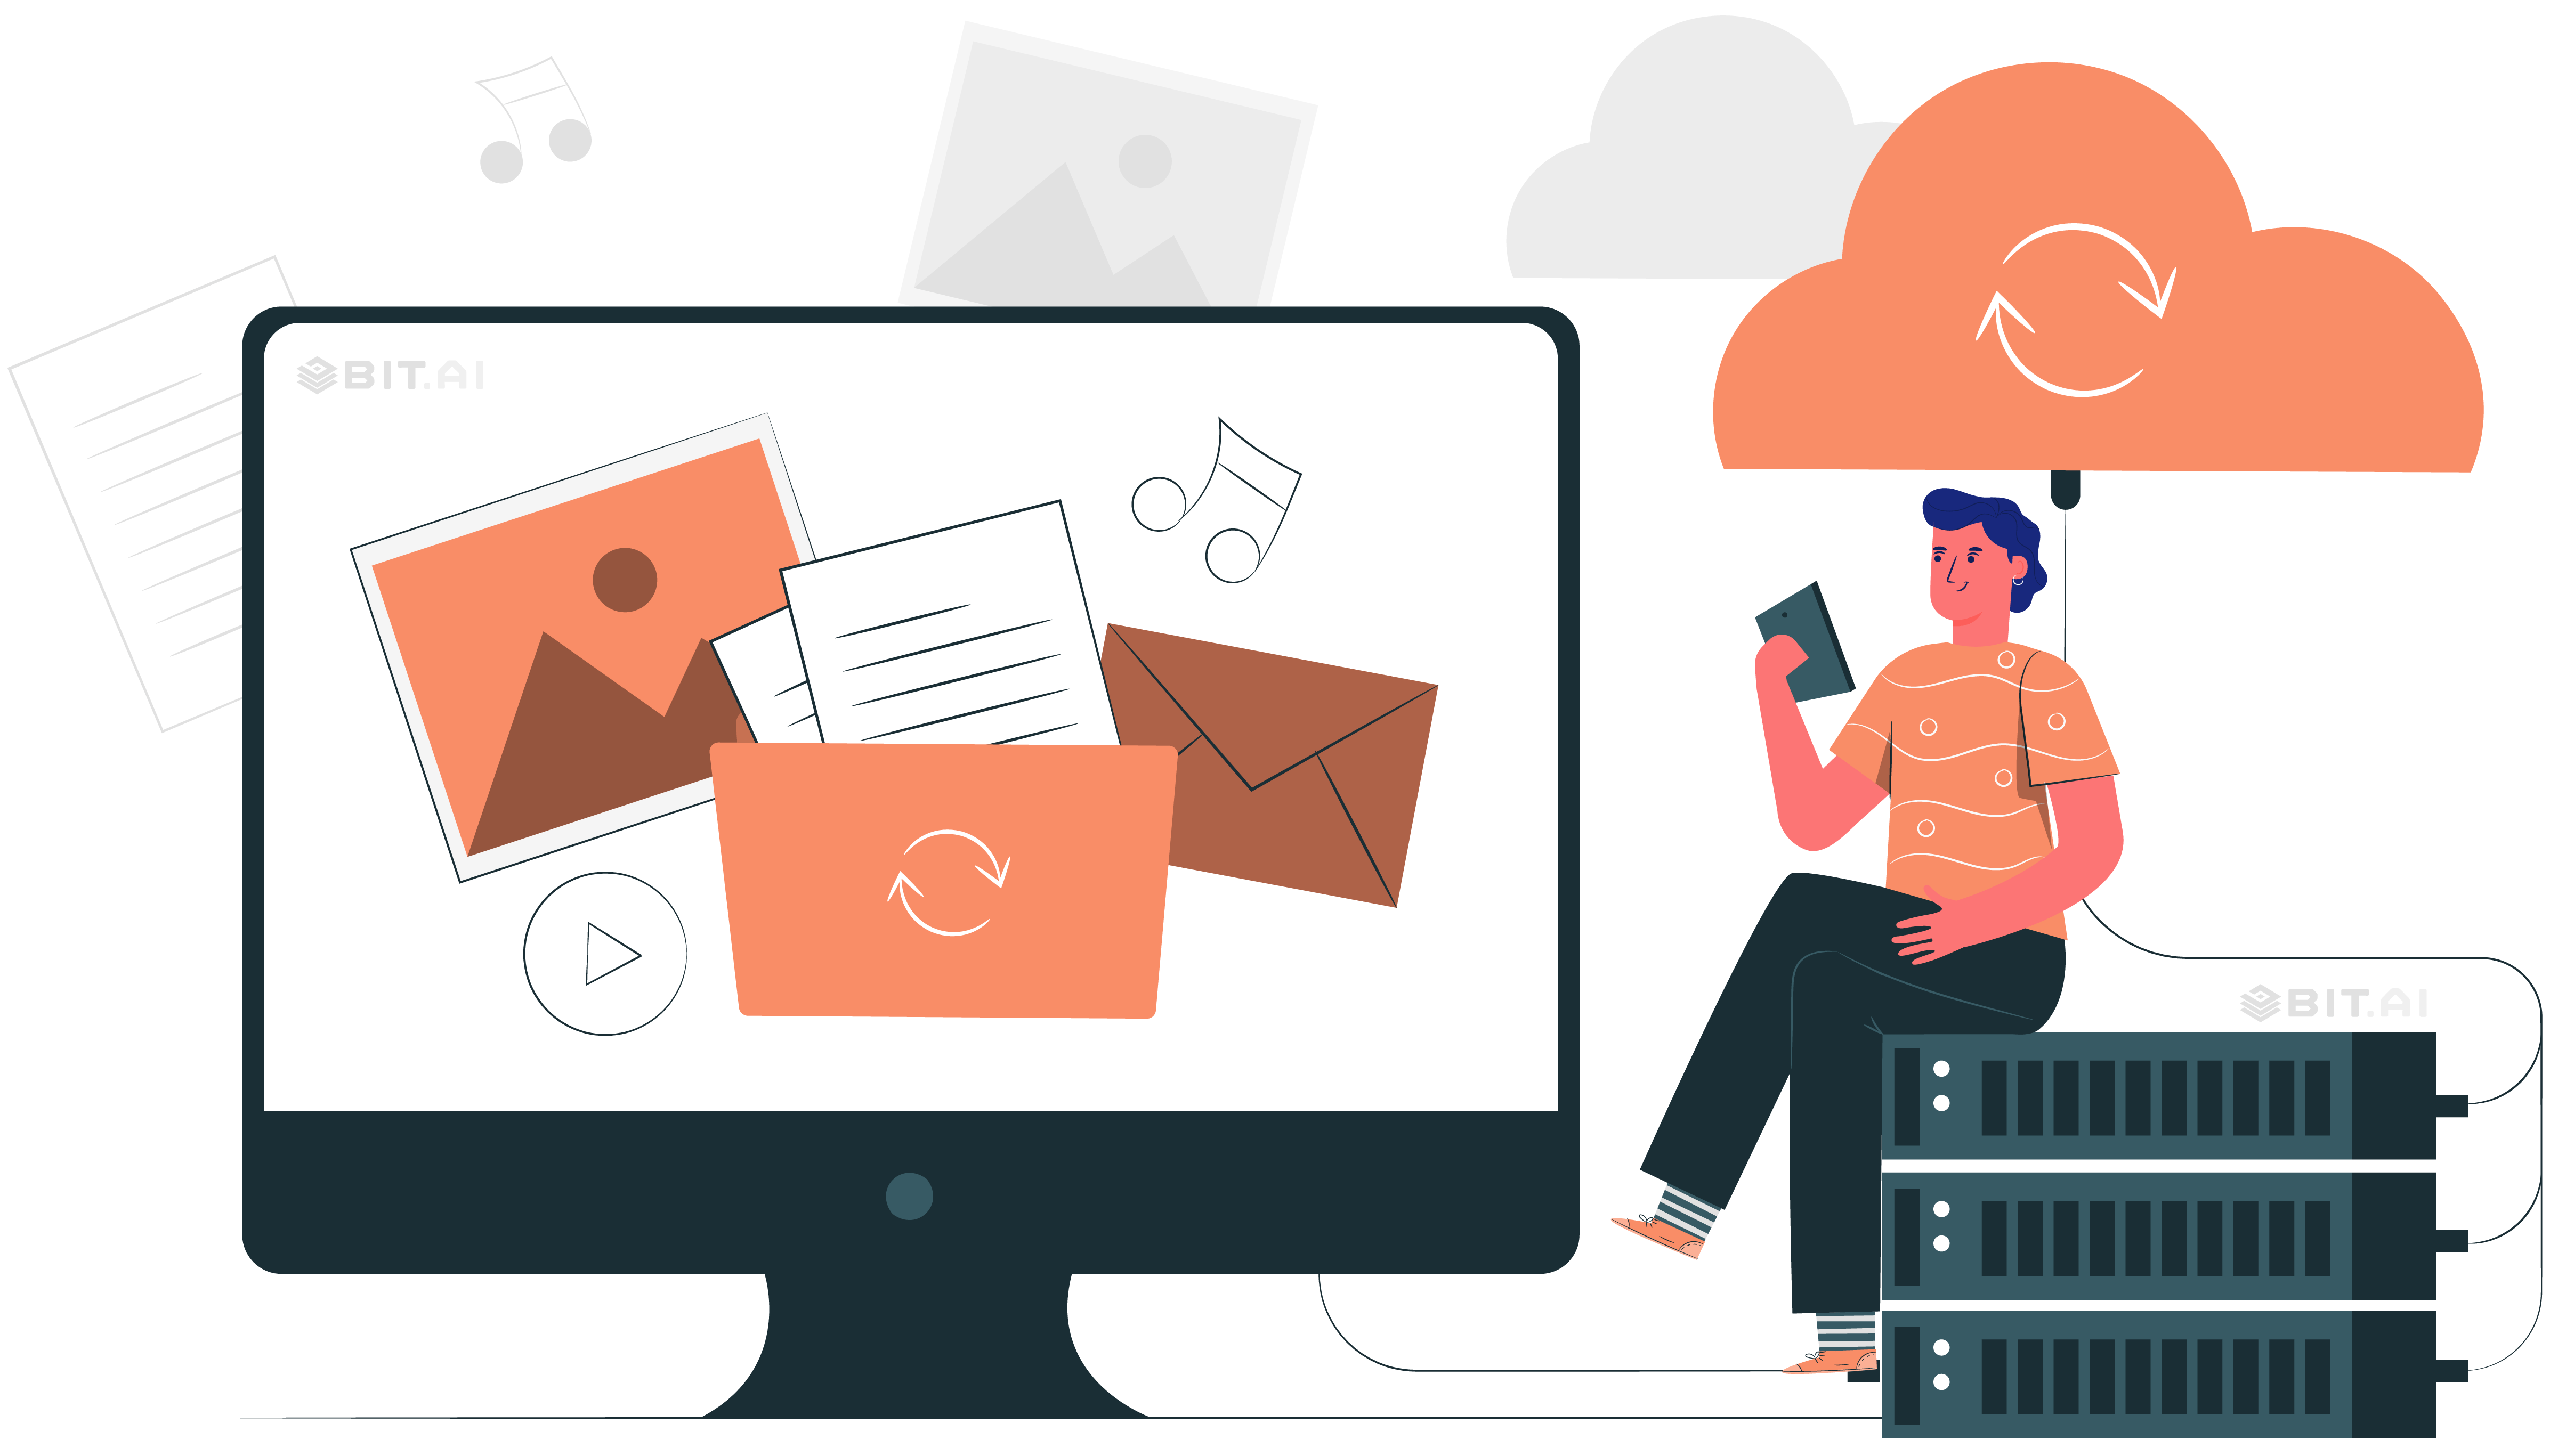 Animated illustration of a man sharing cloud files